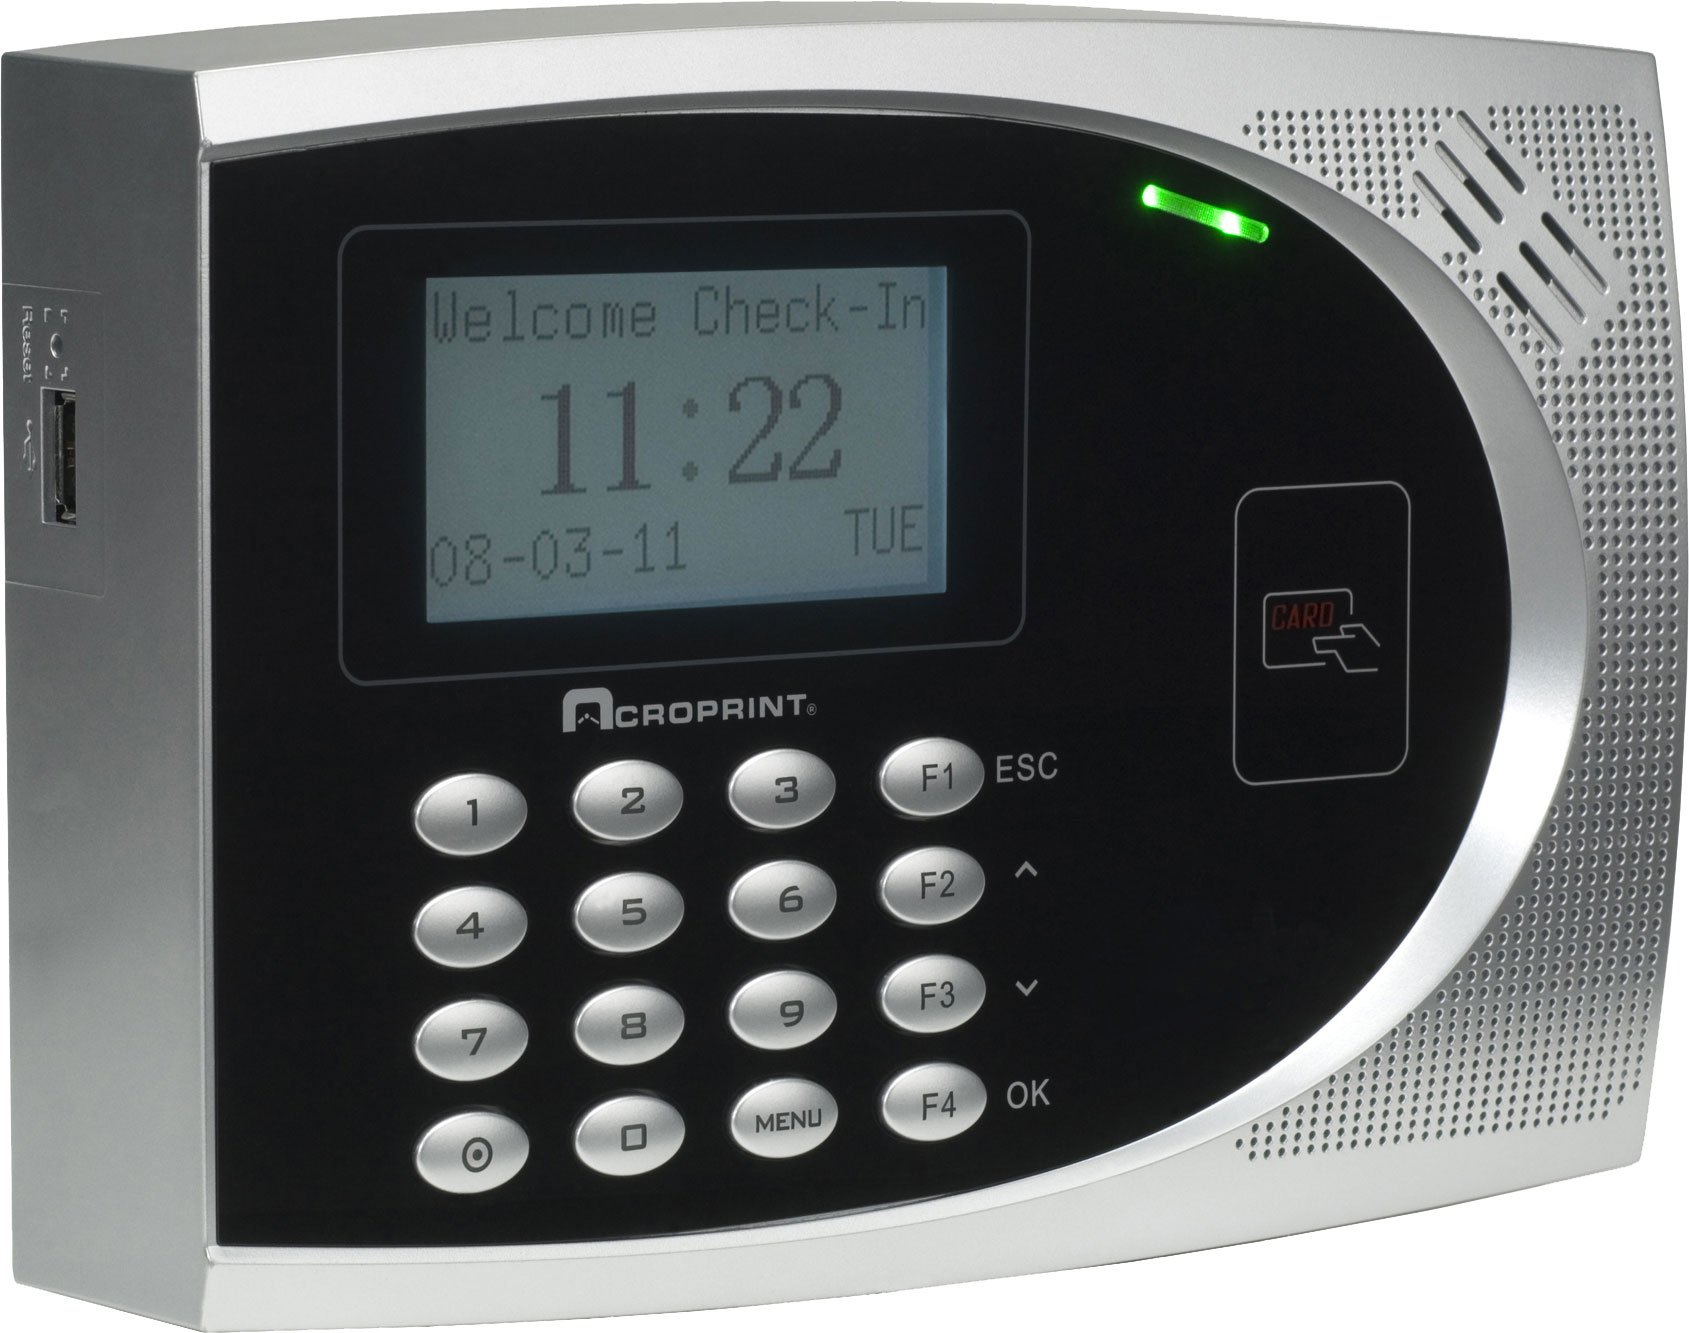 Acroprint 01-0249-000 TimeQplus Proximity Bundle (English/Spanish); Includes timeQplus Sotfware and TQ600P proximity terminal with cables, power supply and mounting hardware by Acroprint